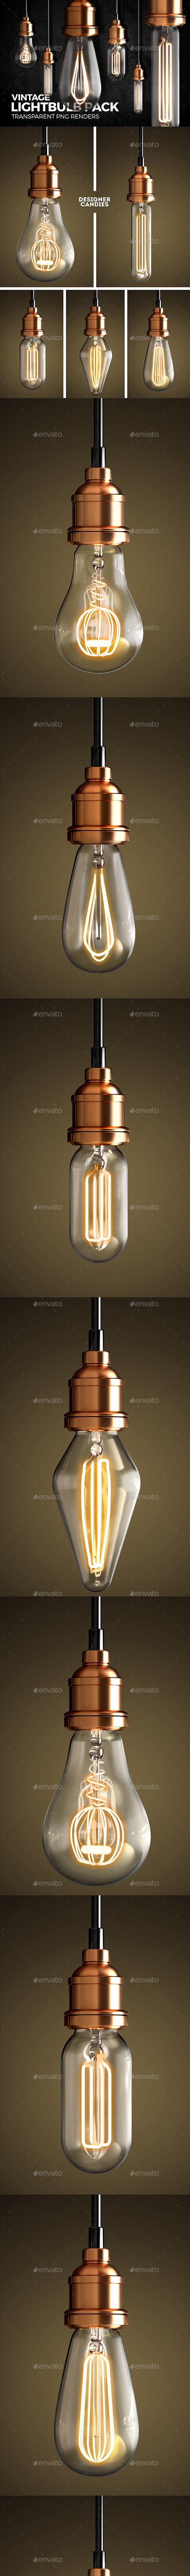 Vintage Lightbulb Renders Pack - Objects 3D Renders